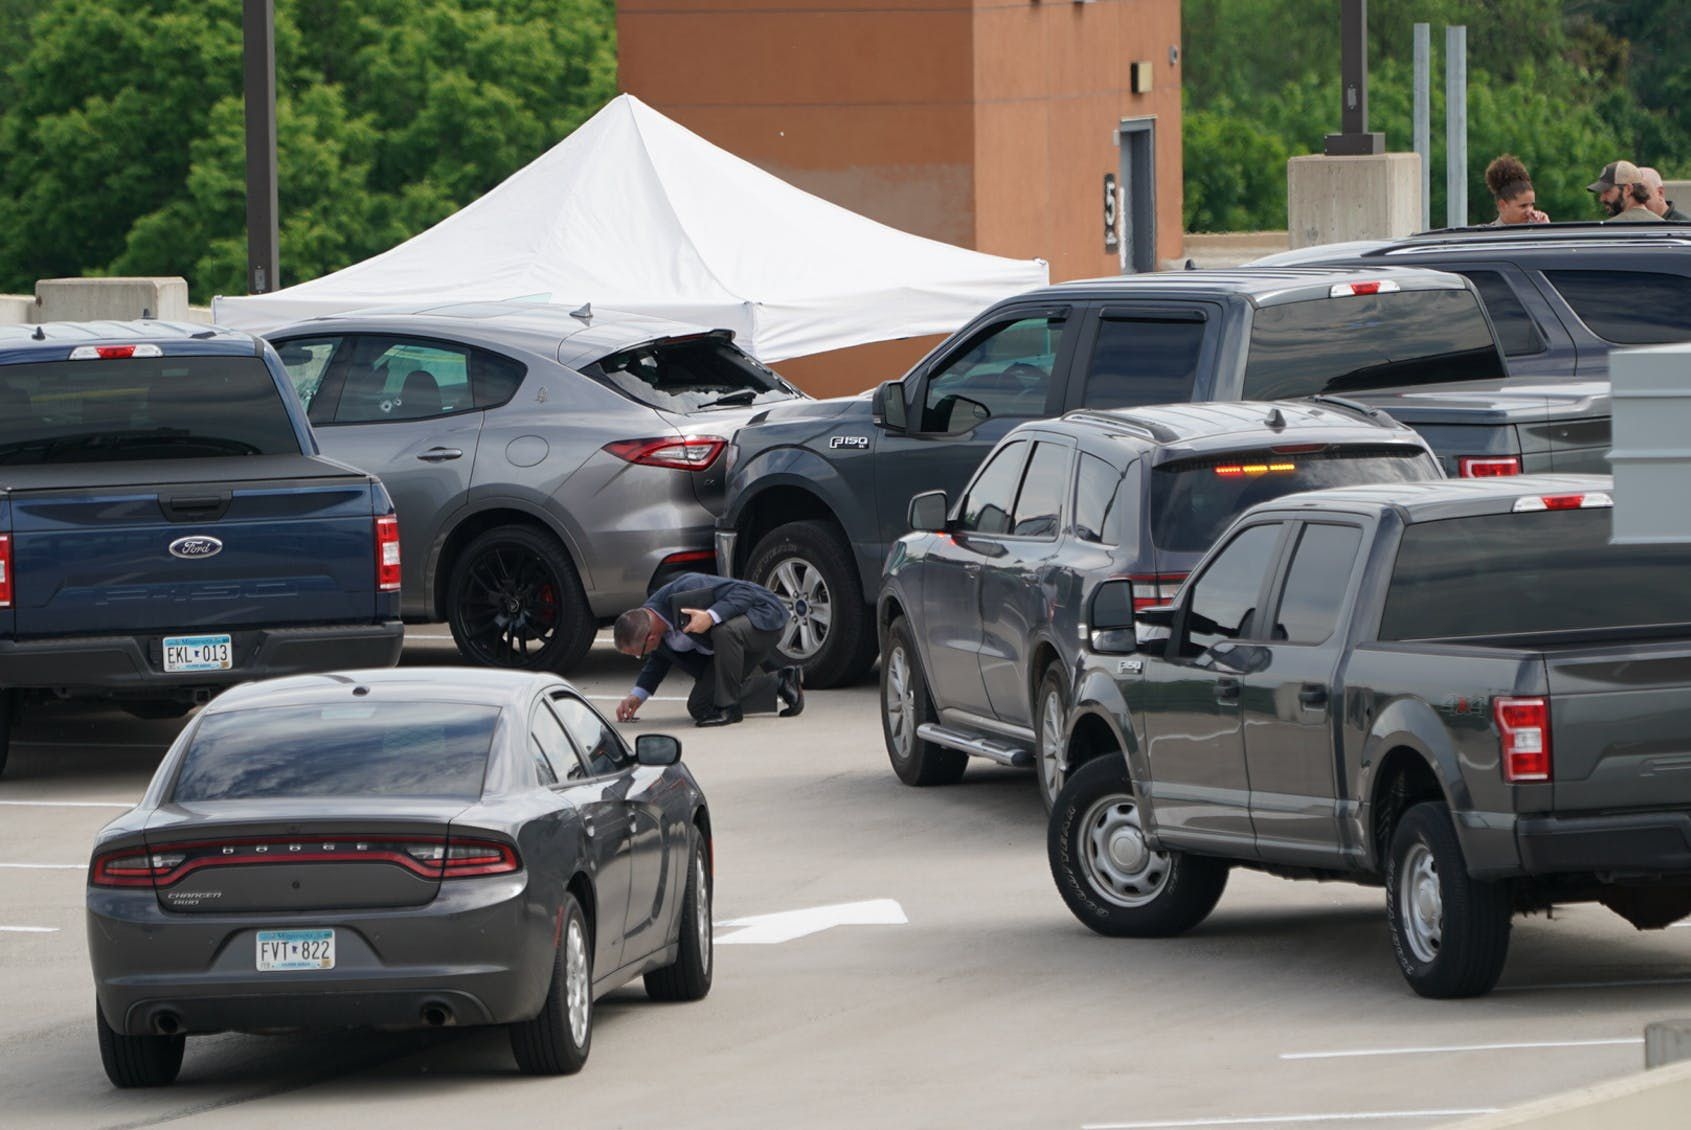 The shooting by Hennepin County sheriff's deputies occurred as authorities pursued a murder suspect, sources said. Minneapolis police were not involved.